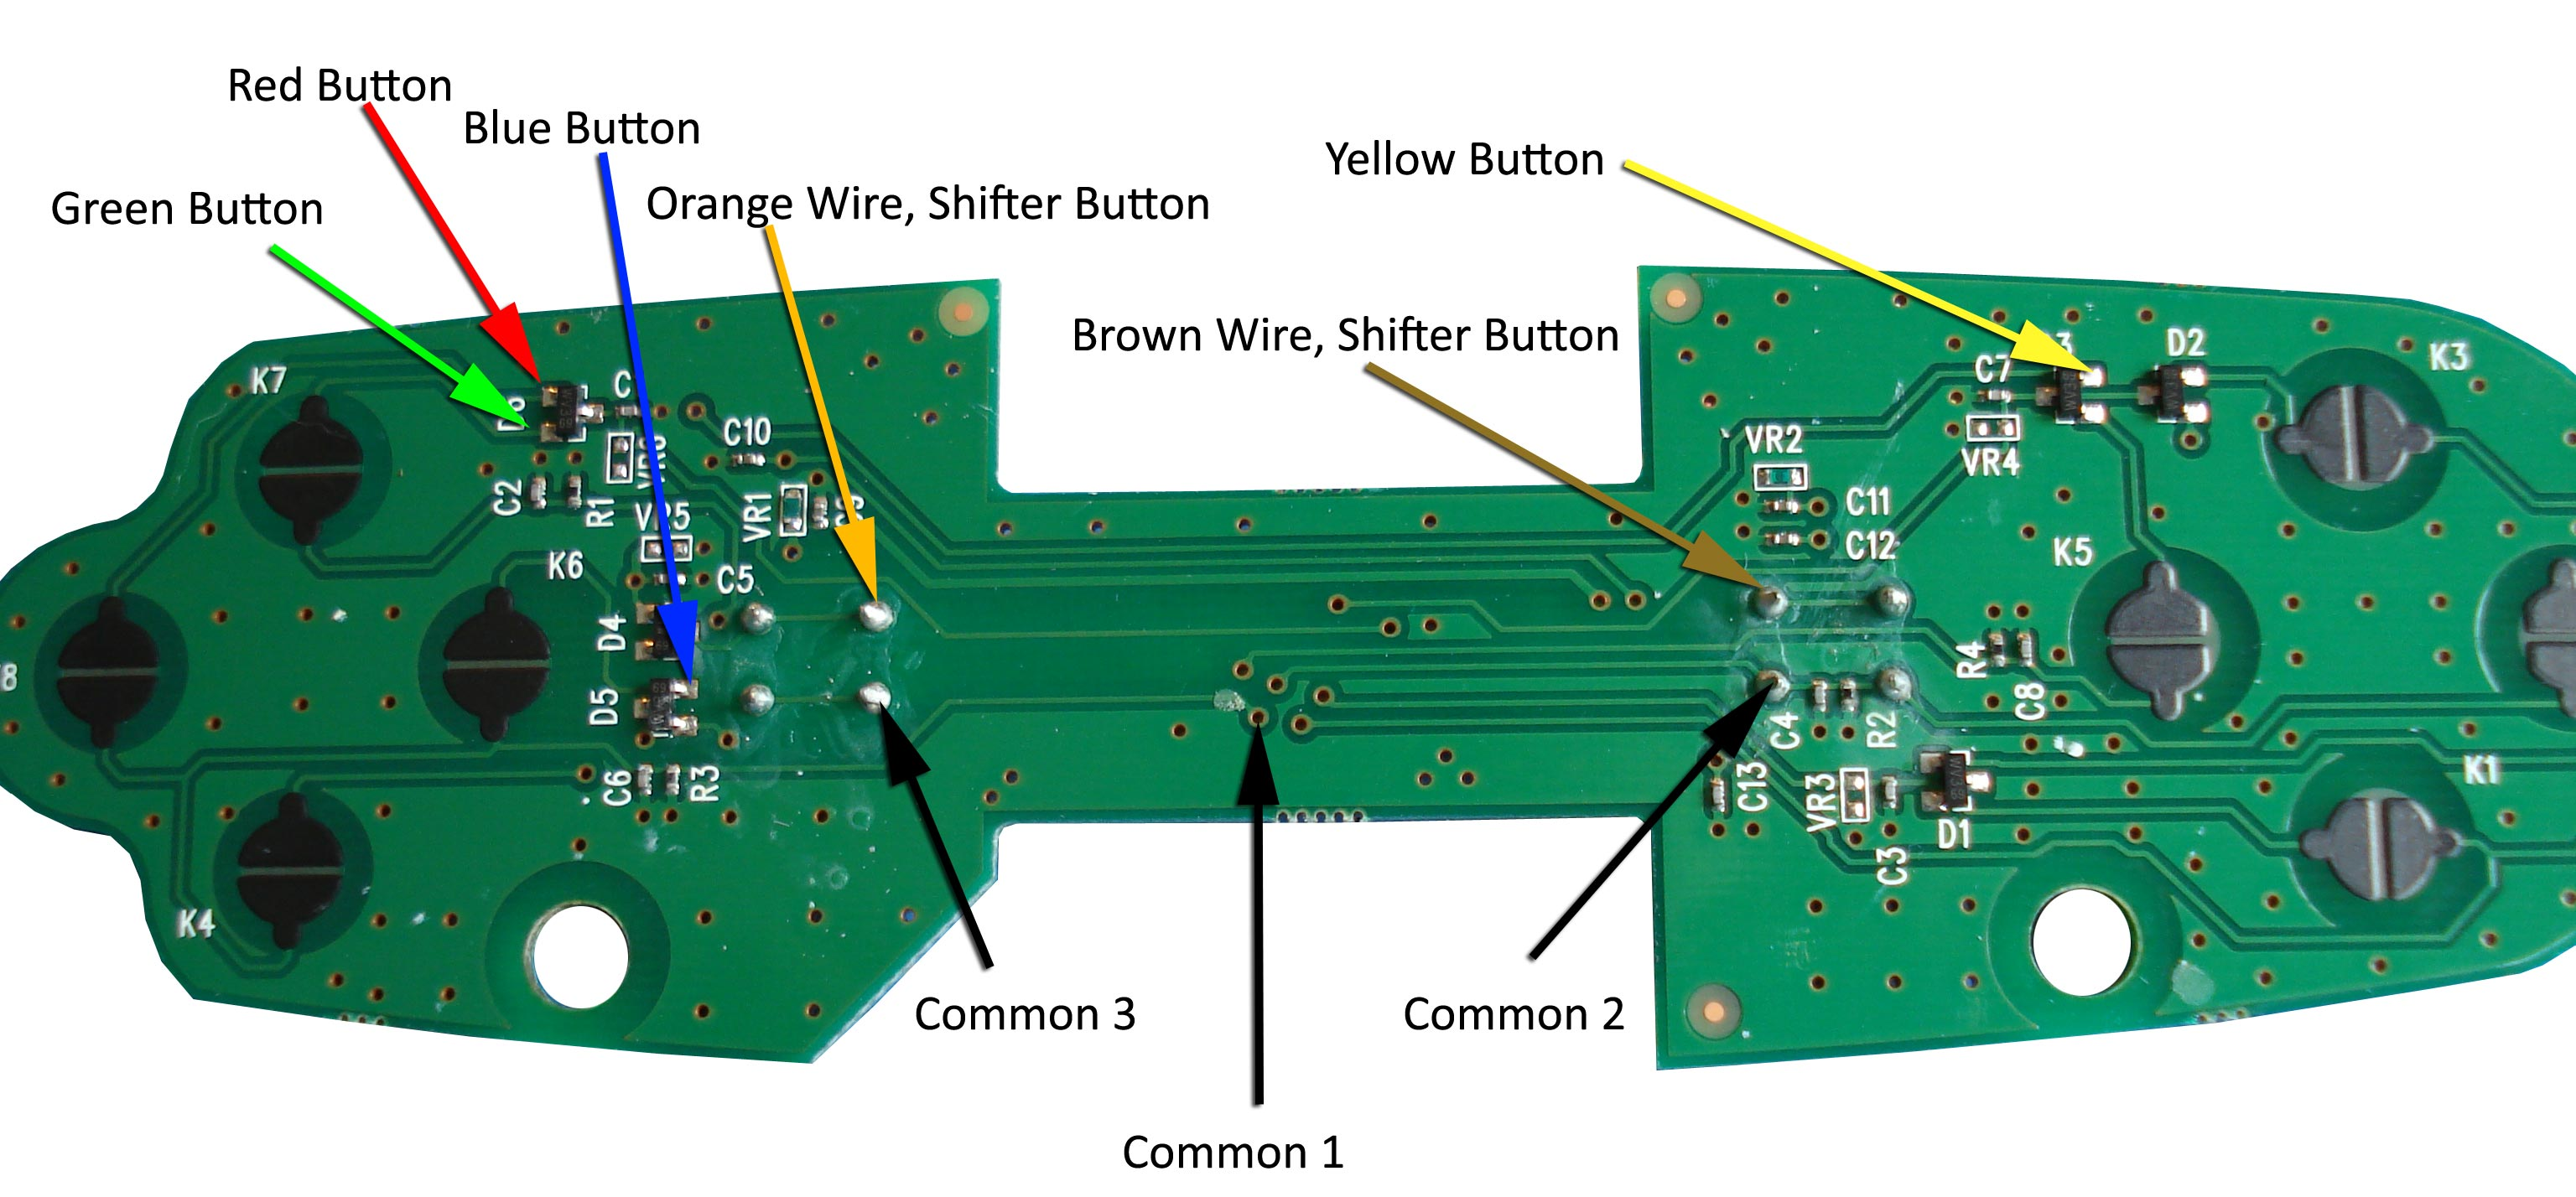 External Button Connections Circuit Board And Wiring With Instructions